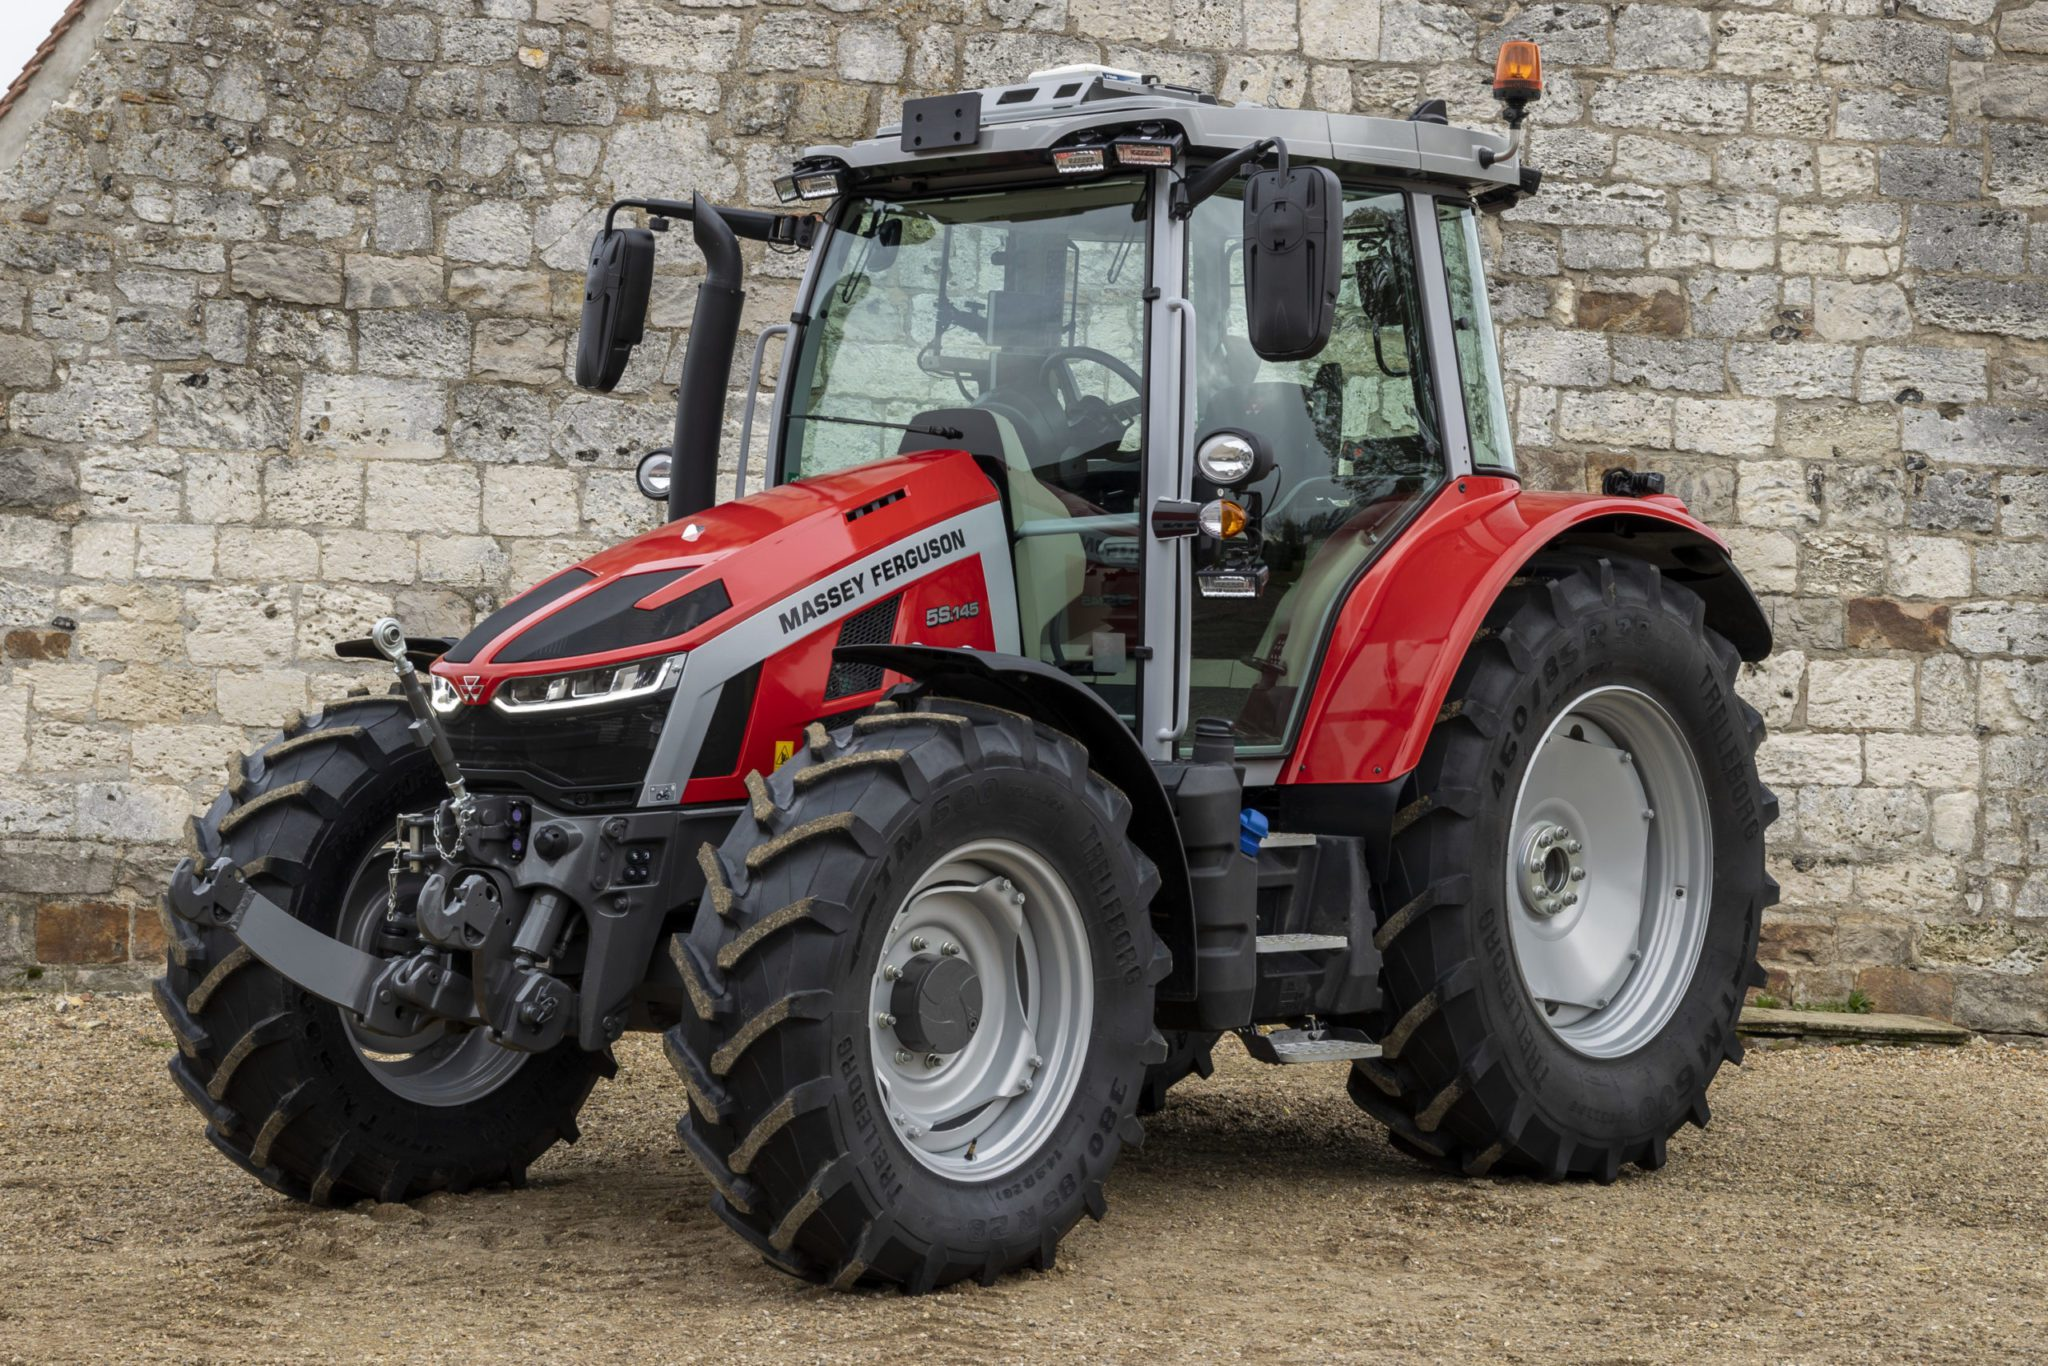 MF 5S launch: The new tractor range from Massey Ferguson